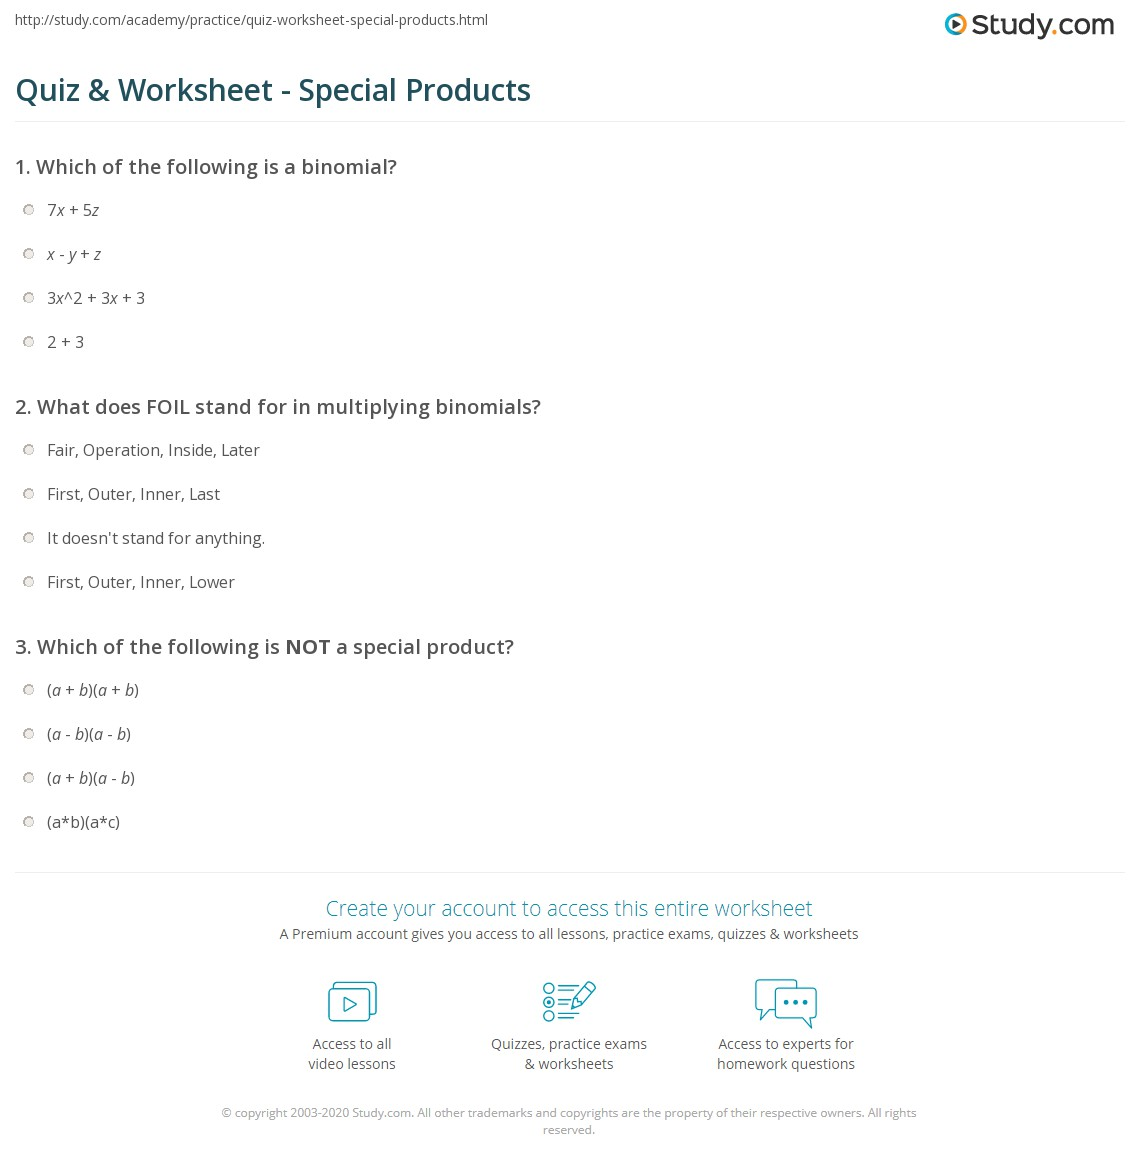 Quiz & Worksheet - Special Products | Study.com